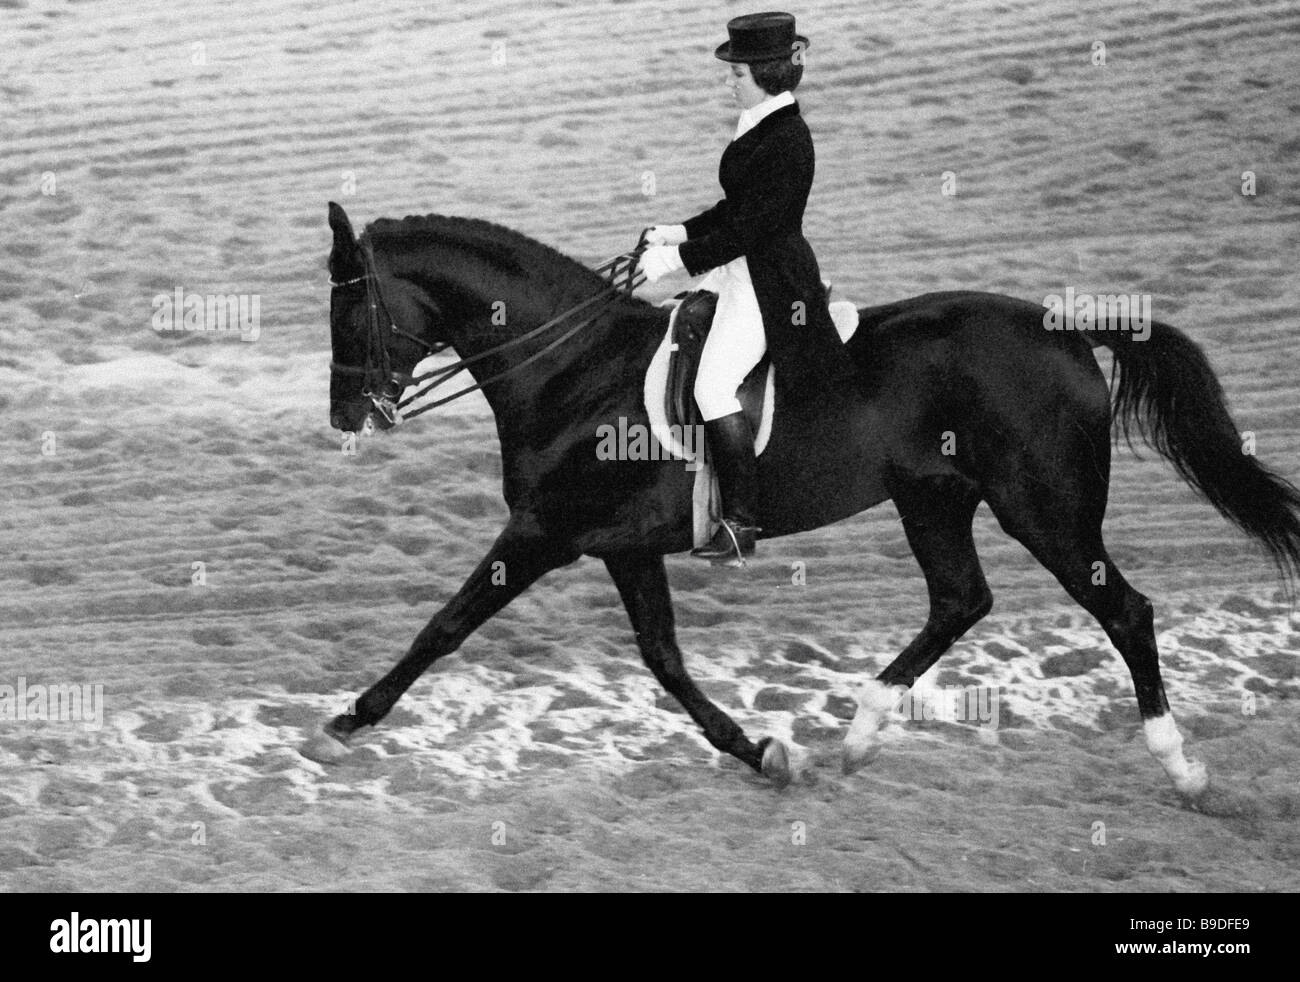 Equestrian Olympics Black And White Stock Photos Amp Images